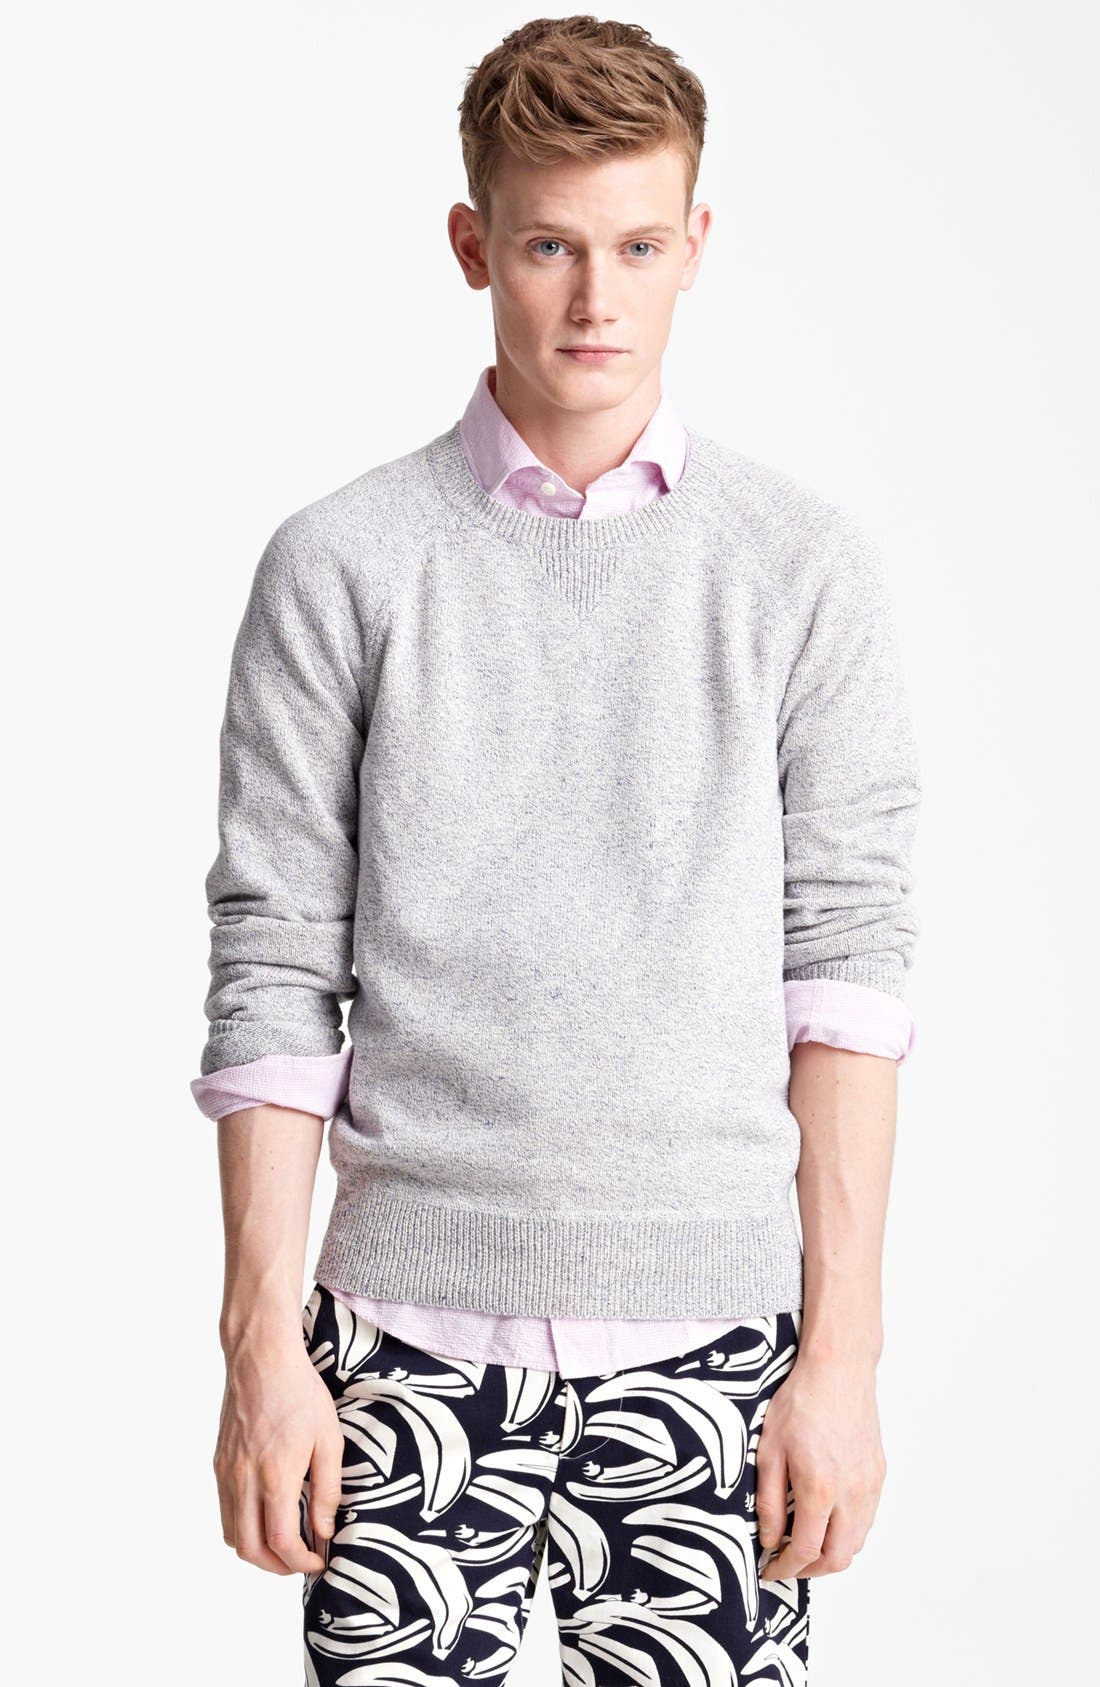 Alternate Image 1 Selected - Jack Spade 'Dawson' Cotton & Linen Crewneck Sweater